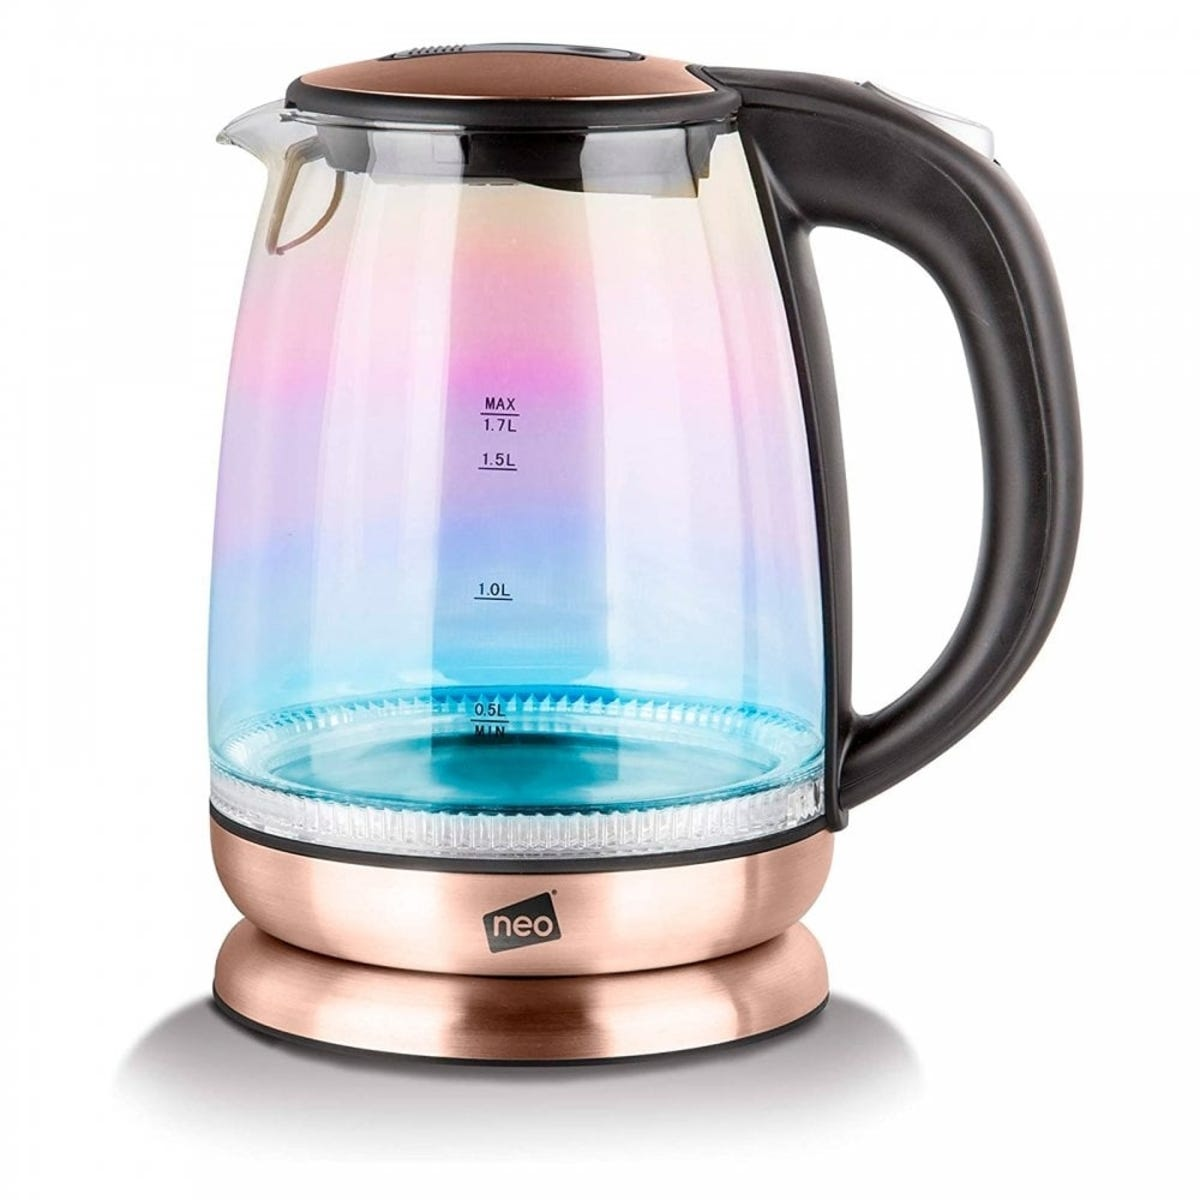 Neo 2200W 1.7L Colour-Changing Rainbow-Effect Glass Jug Kettle - Copper